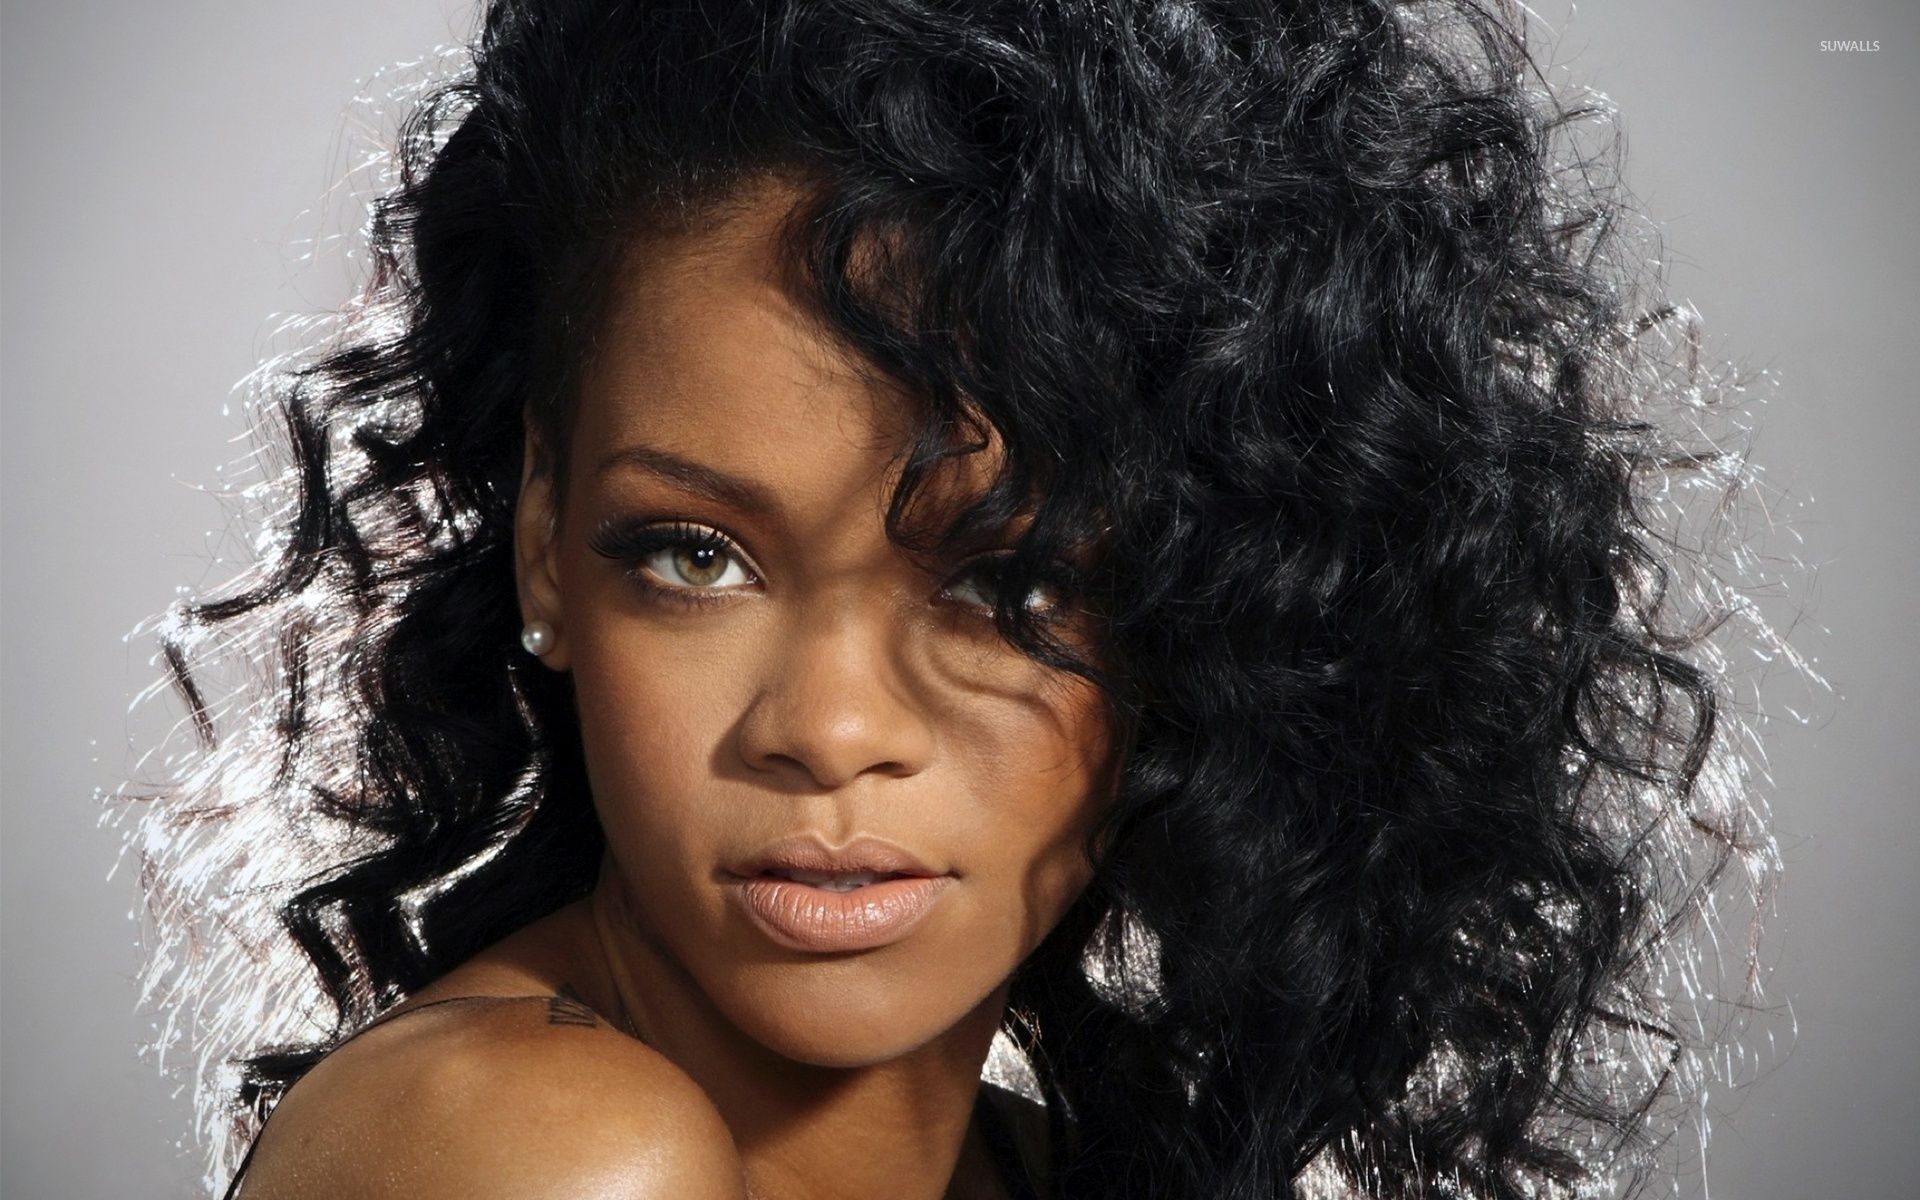 rihanna with curly hair wallpaper - celebrity wallpapers - #49901